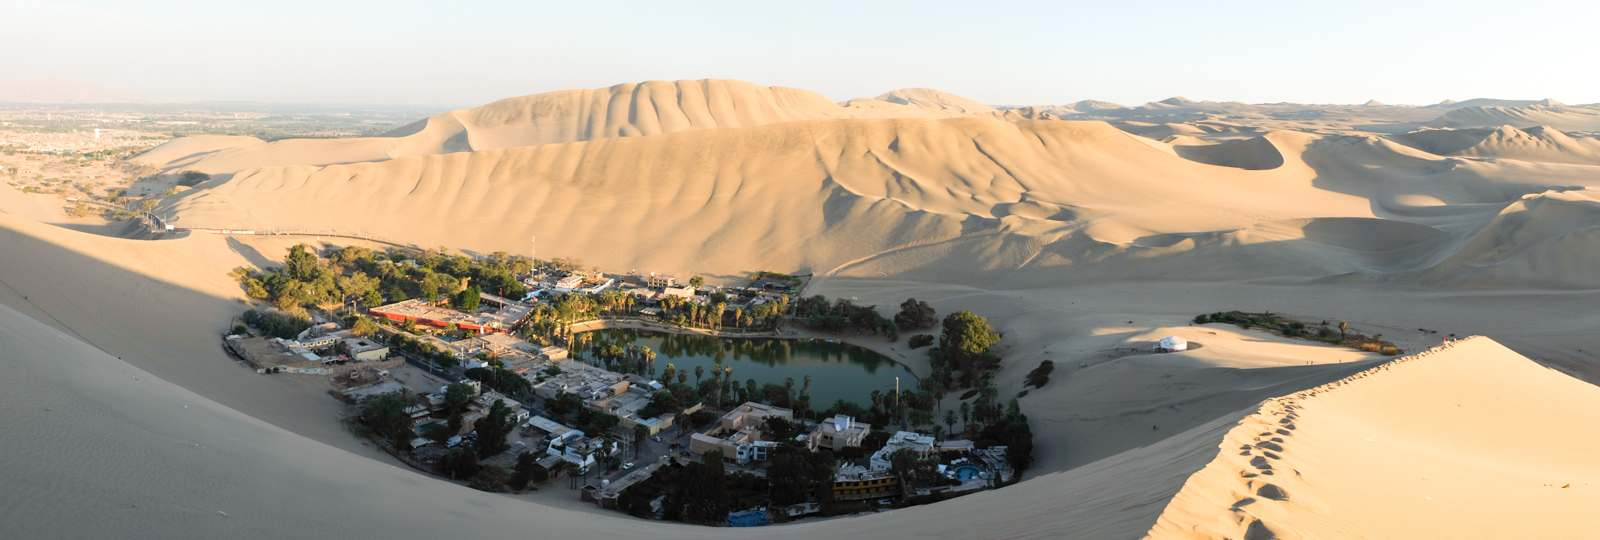 huacachina4 Huacachina   The Mystical Desert Oasis in Peru